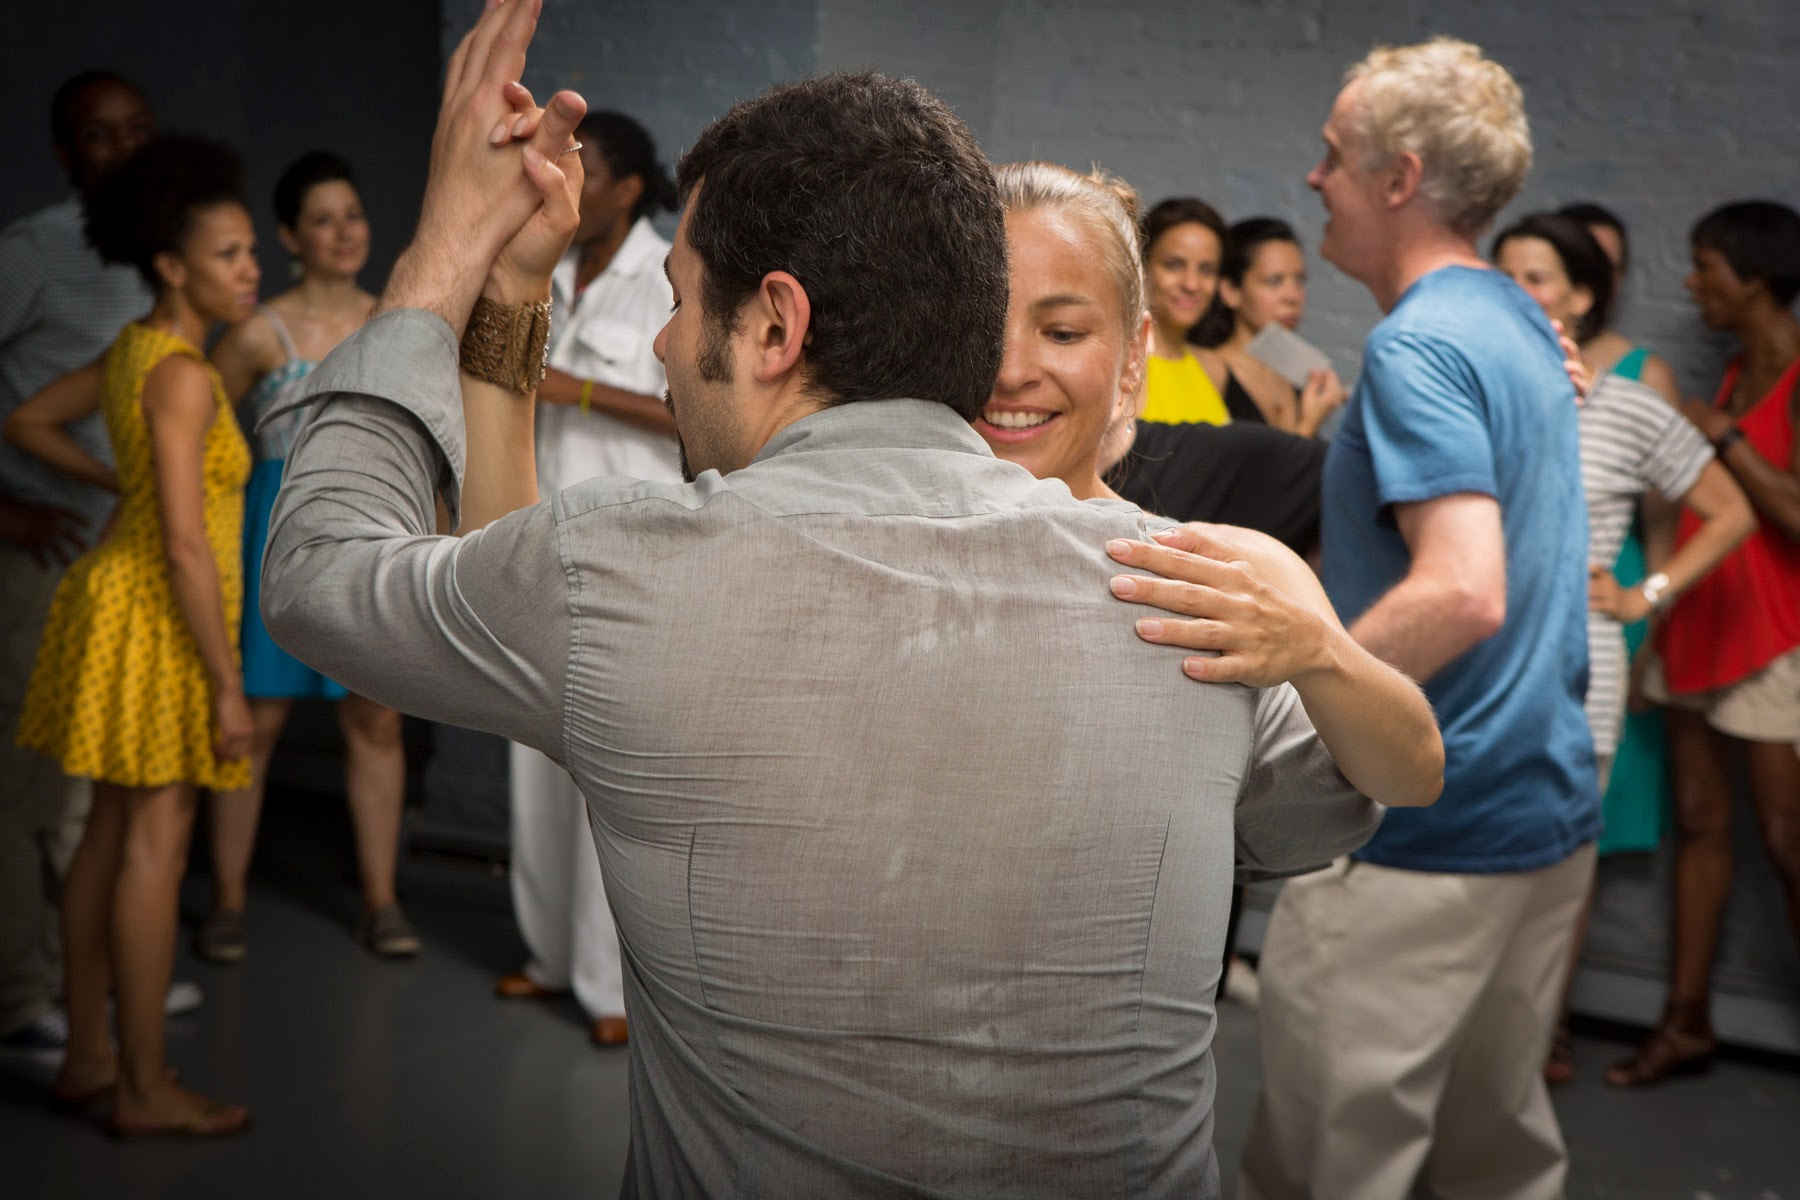 Salsa Bliss at 5Myles Gallery